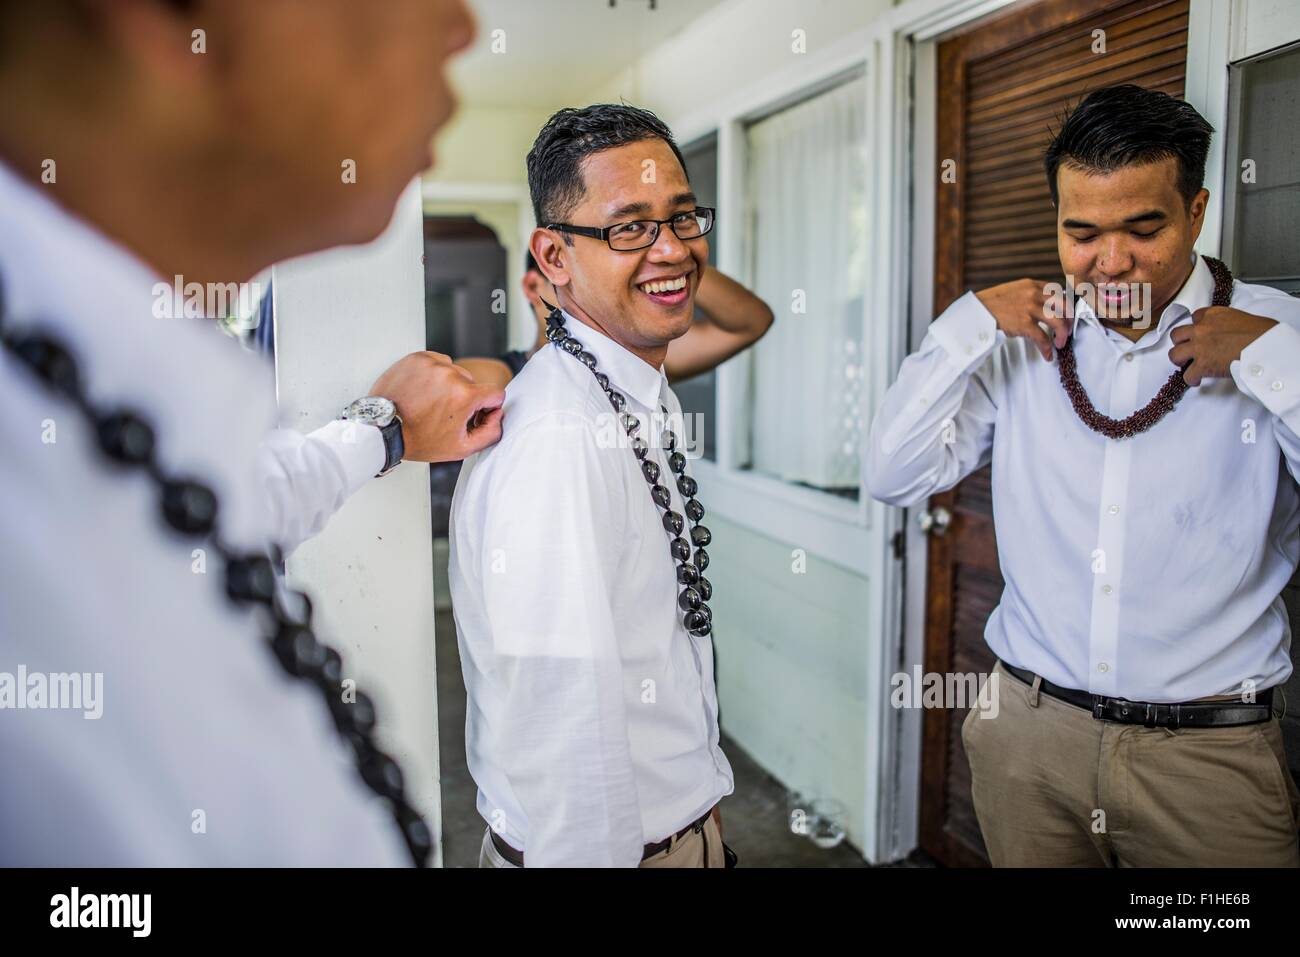 Three young men preparing for Hawaiian wedding wearing kukui nut beads, Kaaawa, Oahu, Hawaii, USA - Stock Image